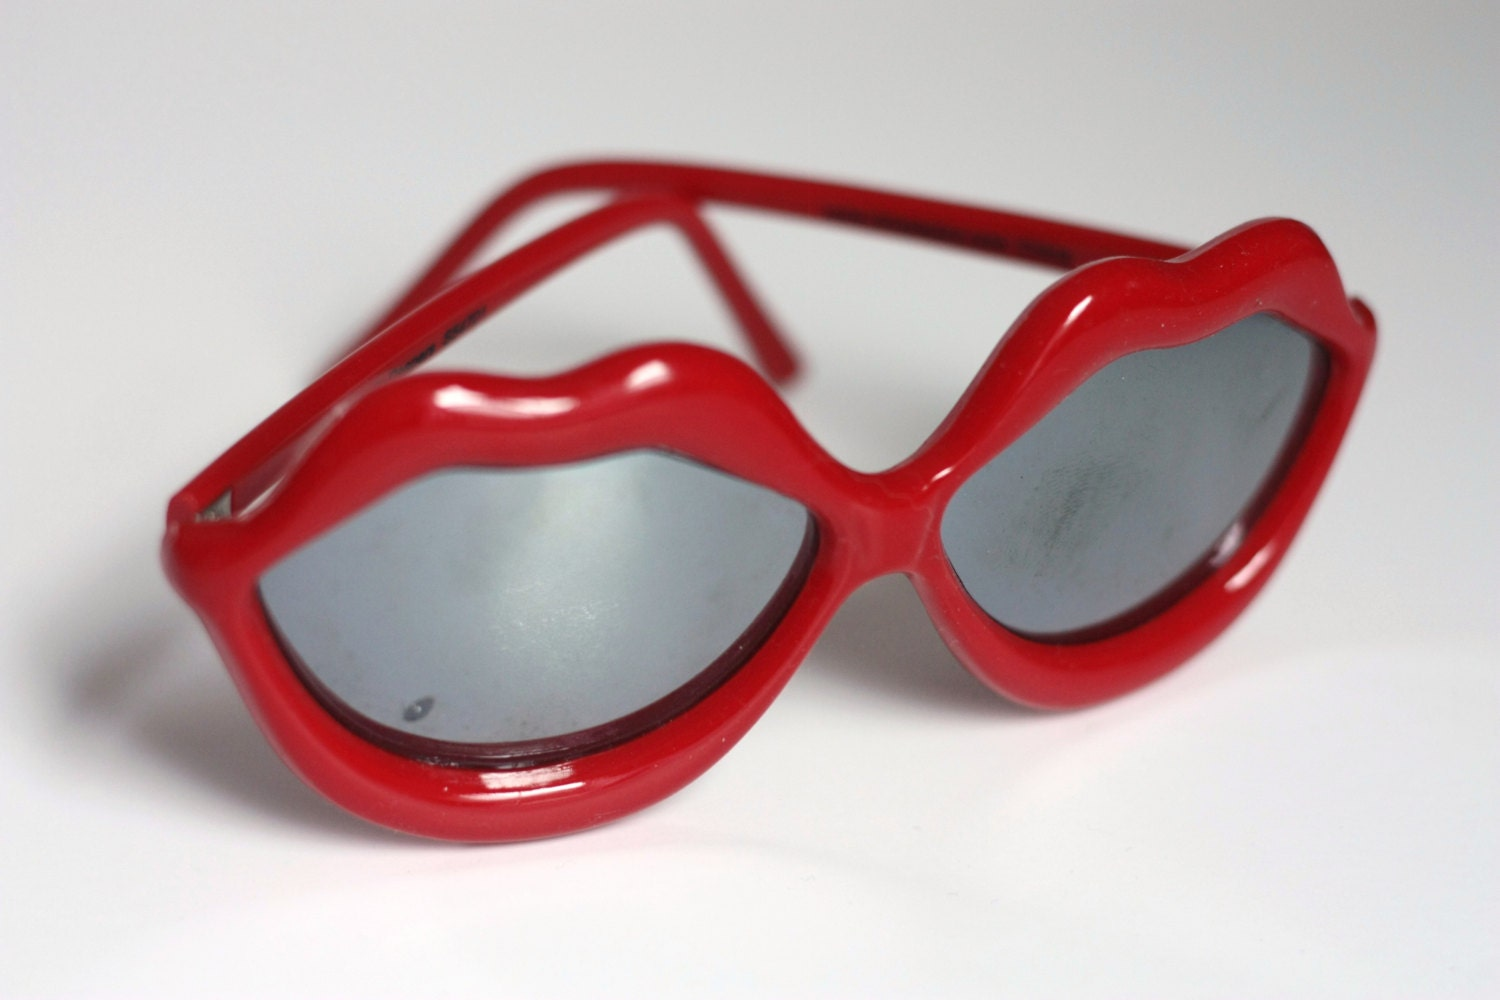 Vintage Bright Red Lola Sunglasses / Red Lips Sunglasses - GetColorCrazy